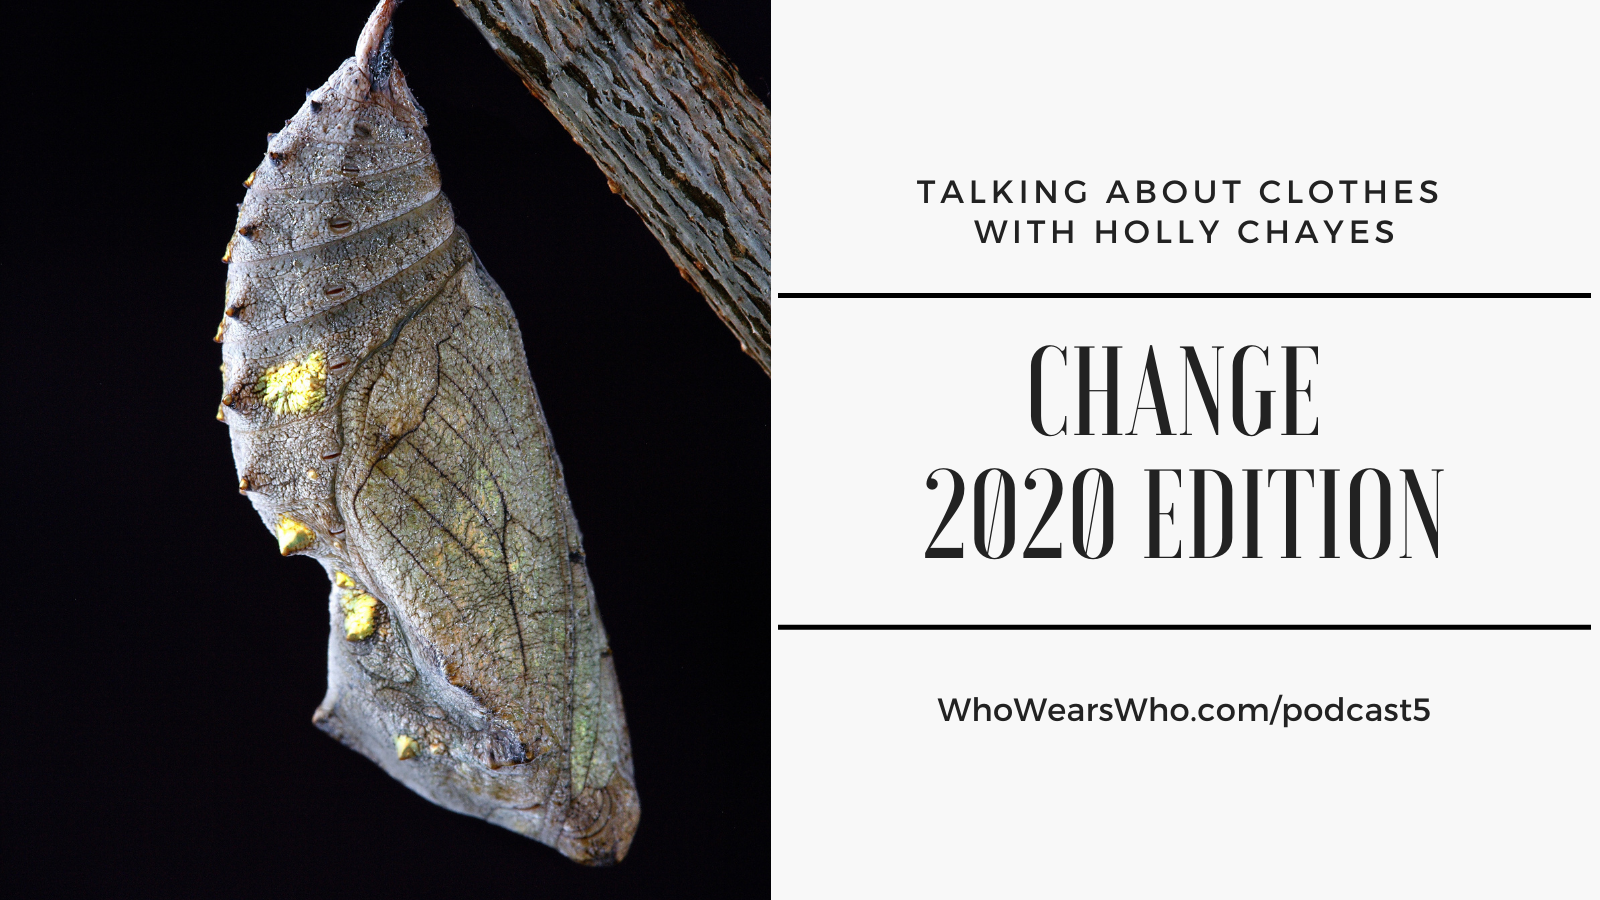 Talking About Clothes Podcast 5 Change 2020 Edition Twitter